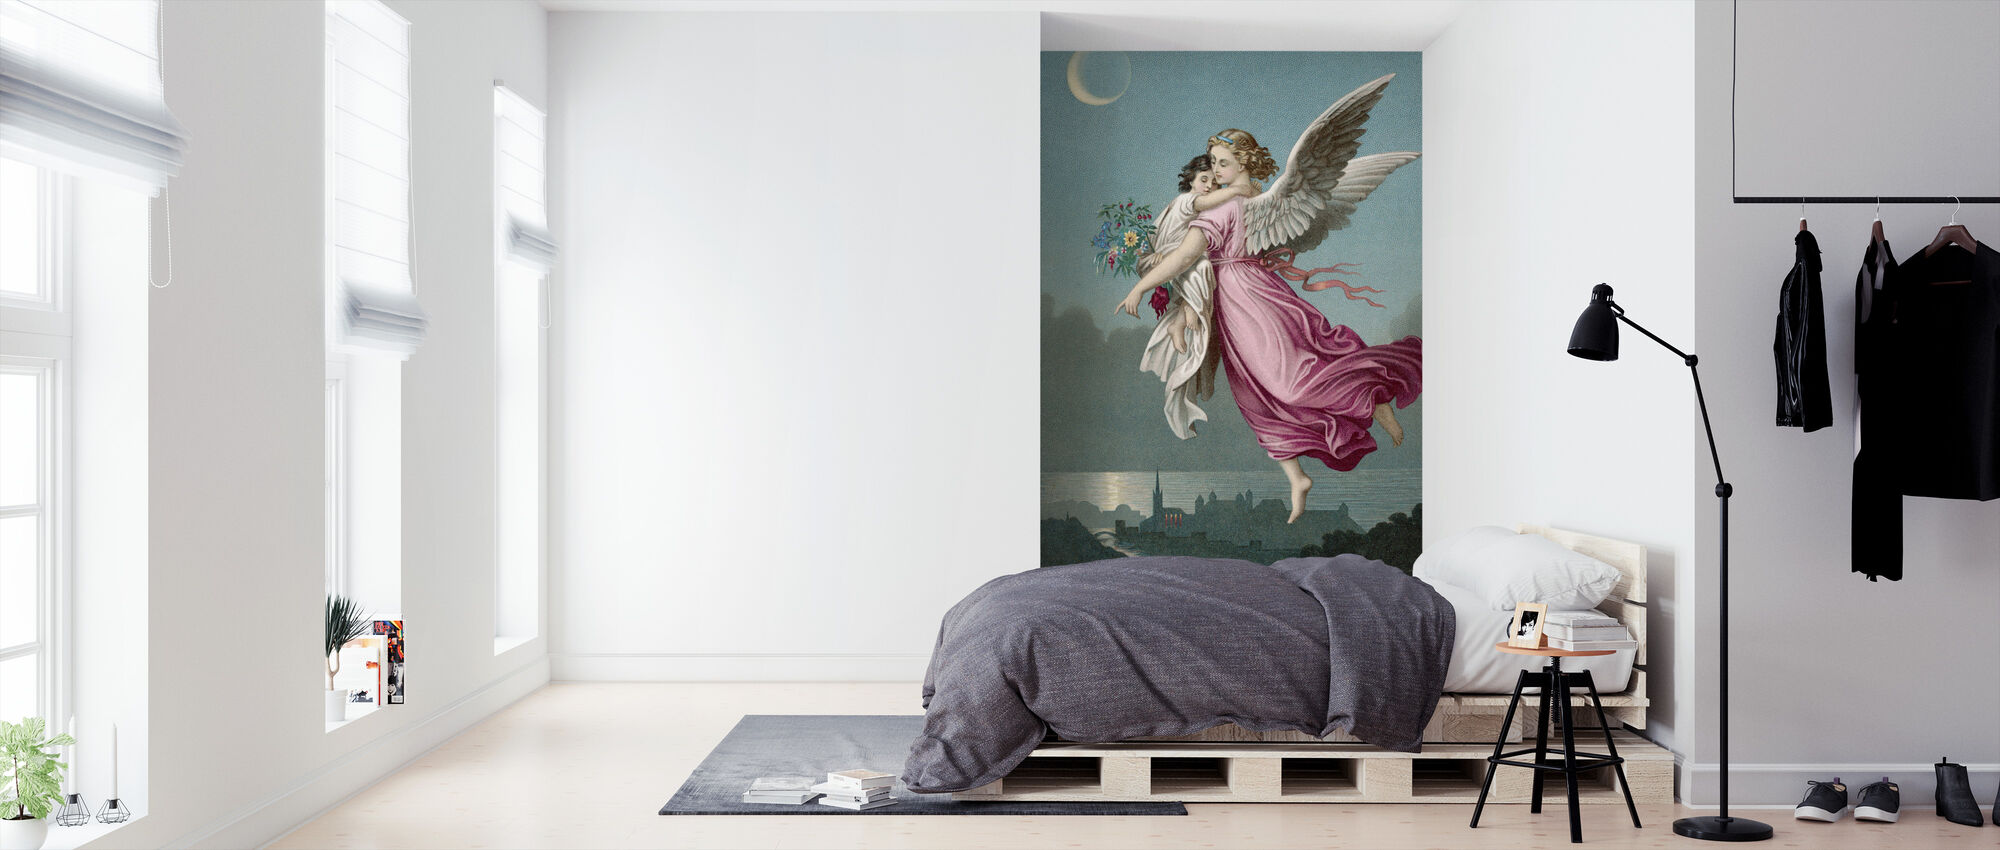 Carrying - Wallpaper - Bedroom